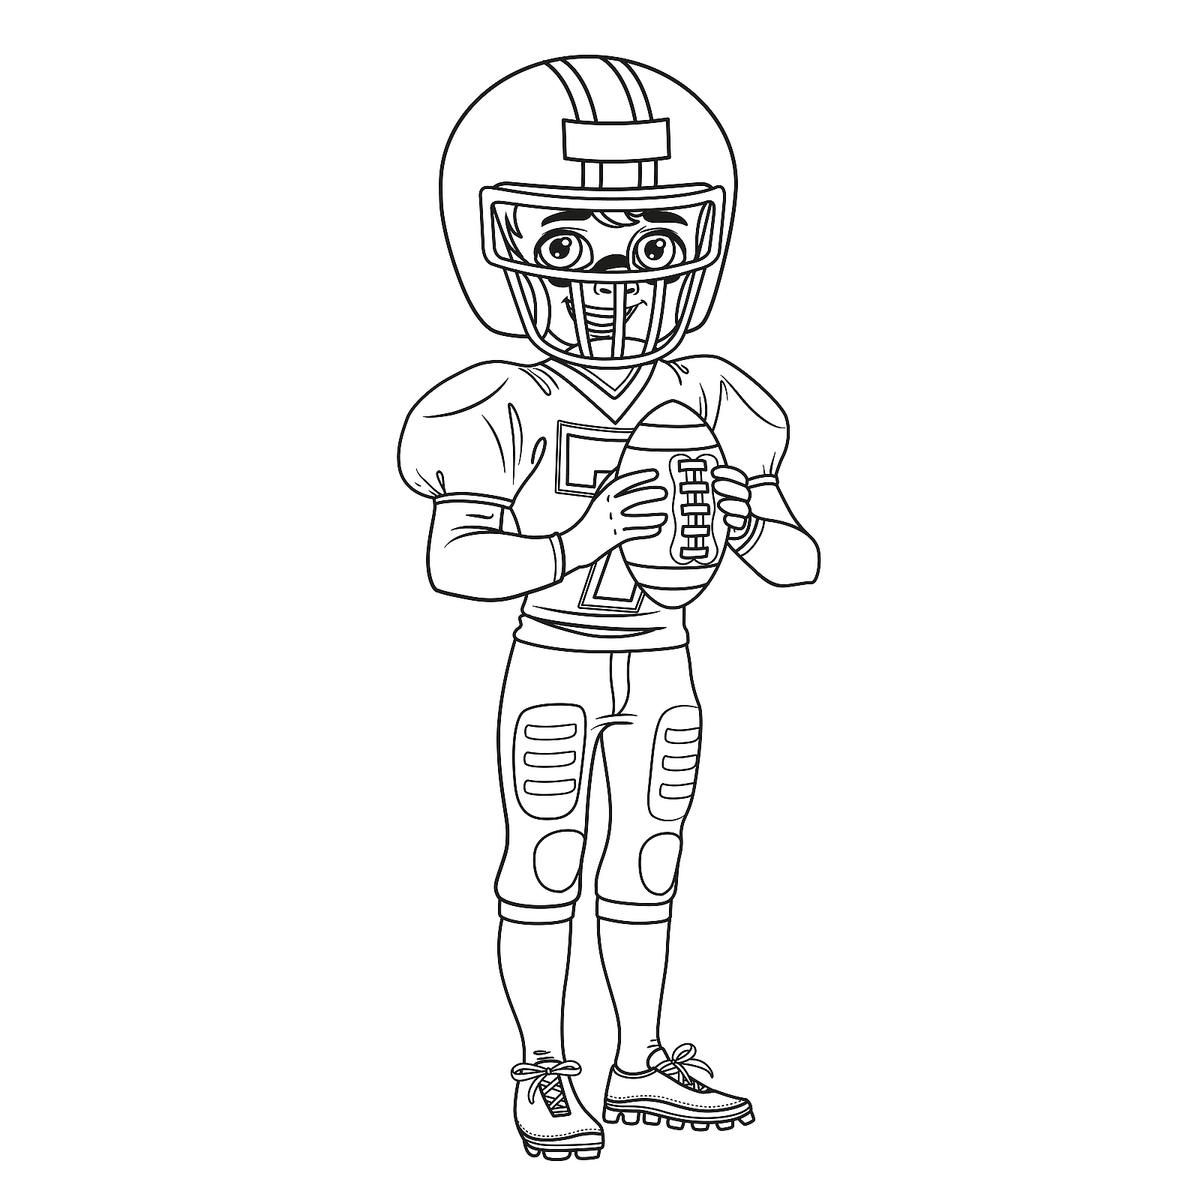 Football Coloring Pages: Football Coloring Pages: Printable Sports Coloring